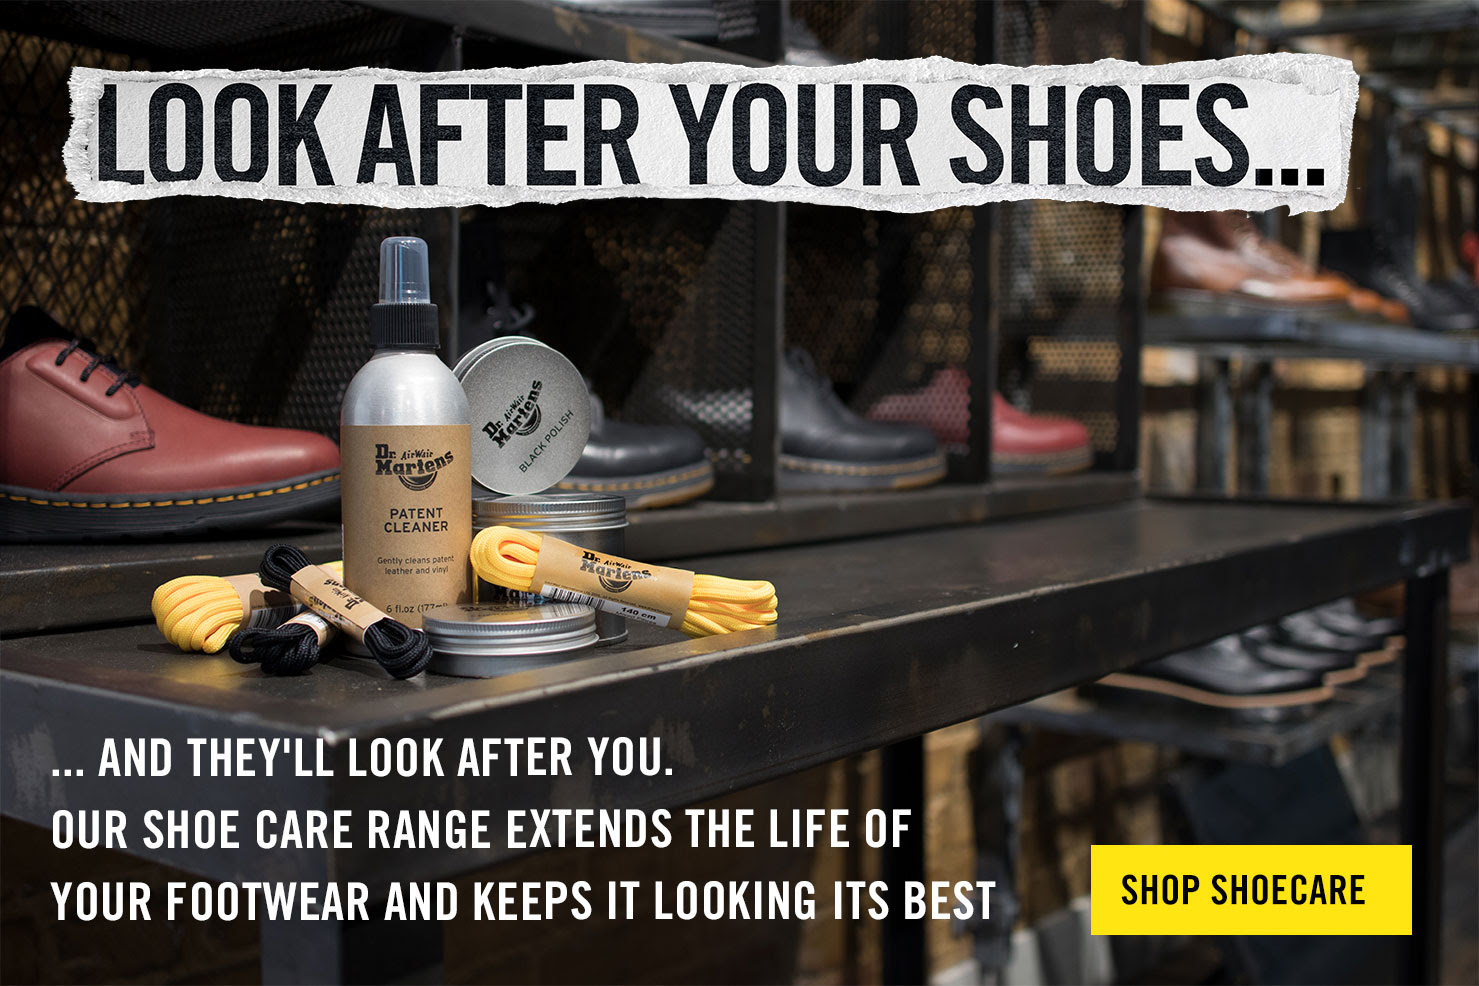 LOOK AFTER YOUR SHOES ... and they'll look after you. Our shoe care range extends the life of your footwear and keeps it looking its best - SHOP SHOE CARE